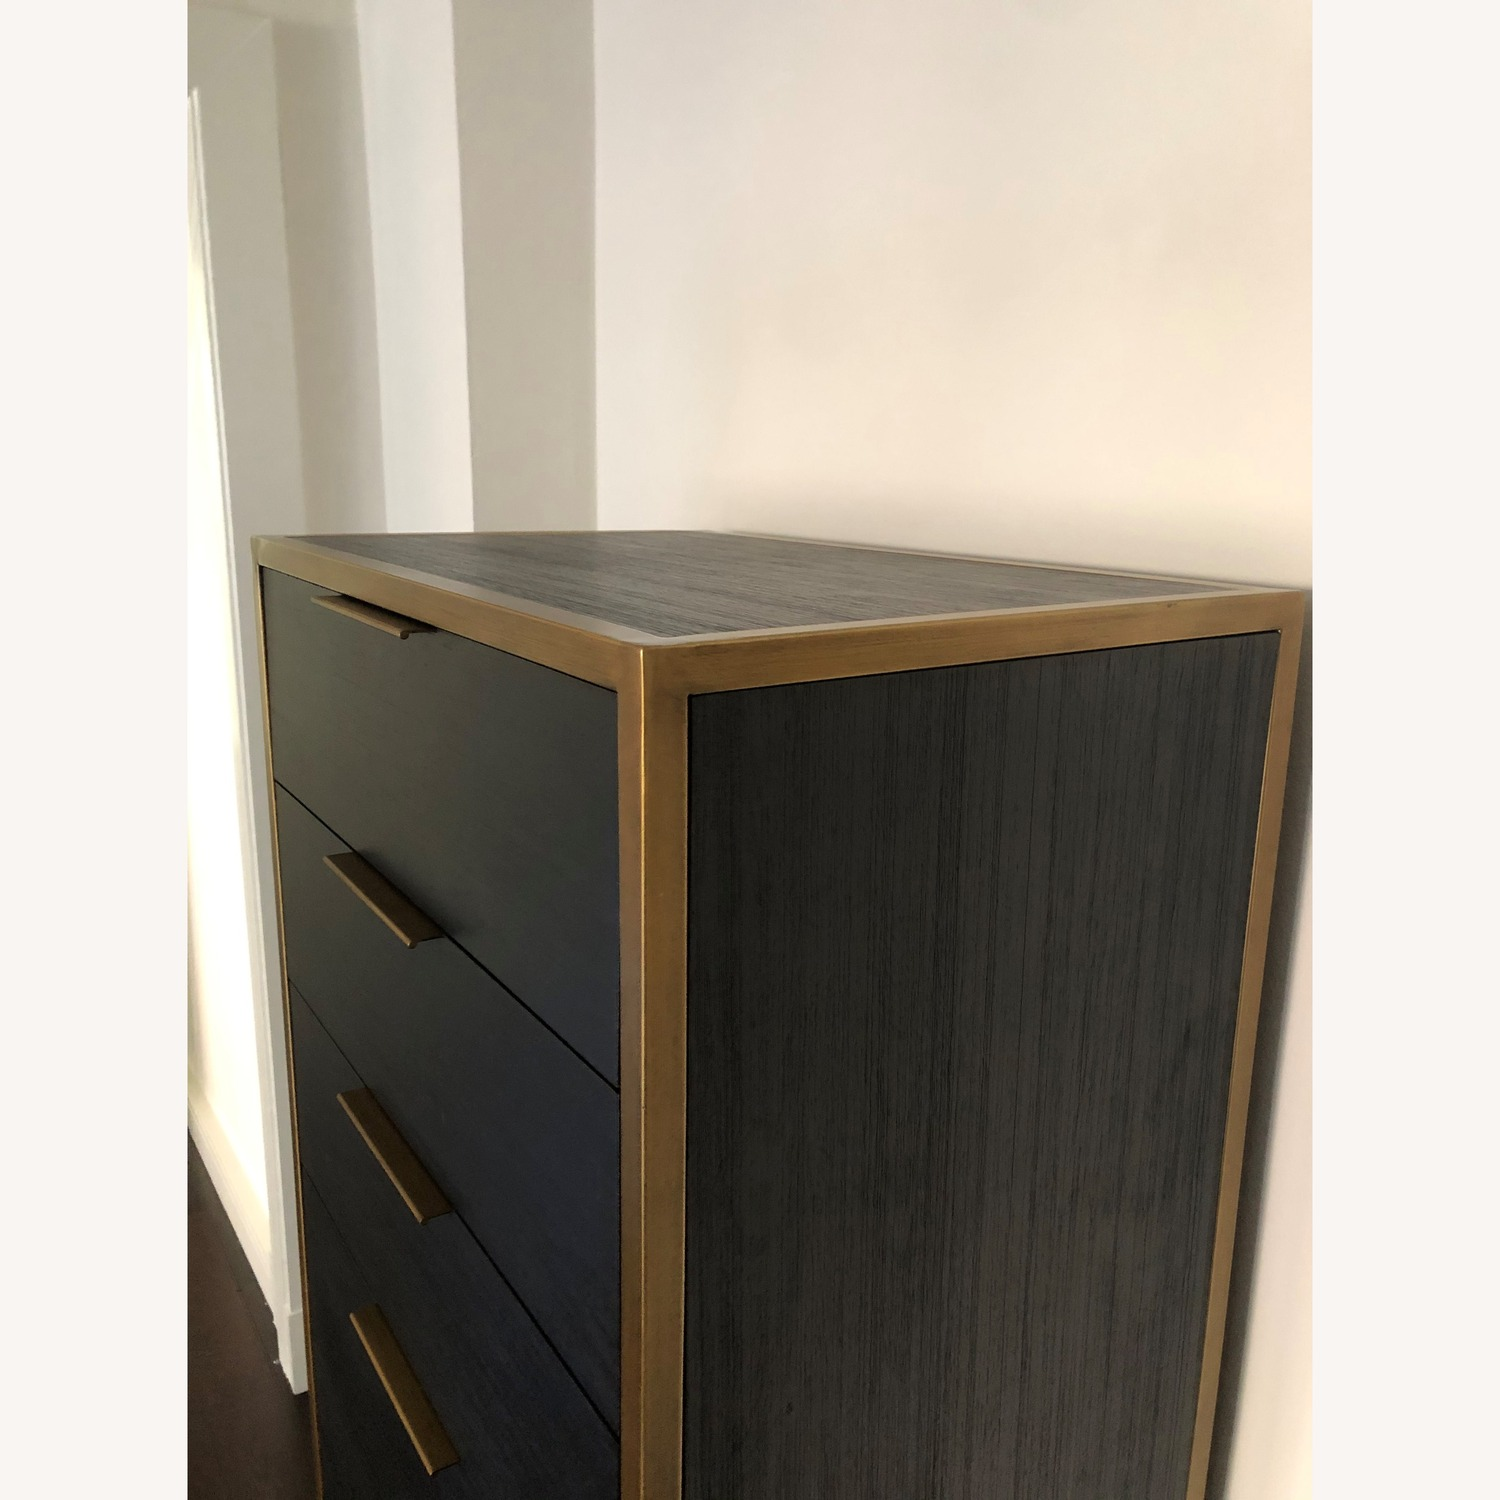 Crate & Barrel Oxford Black 6-Drawer Tall Chest - image-5